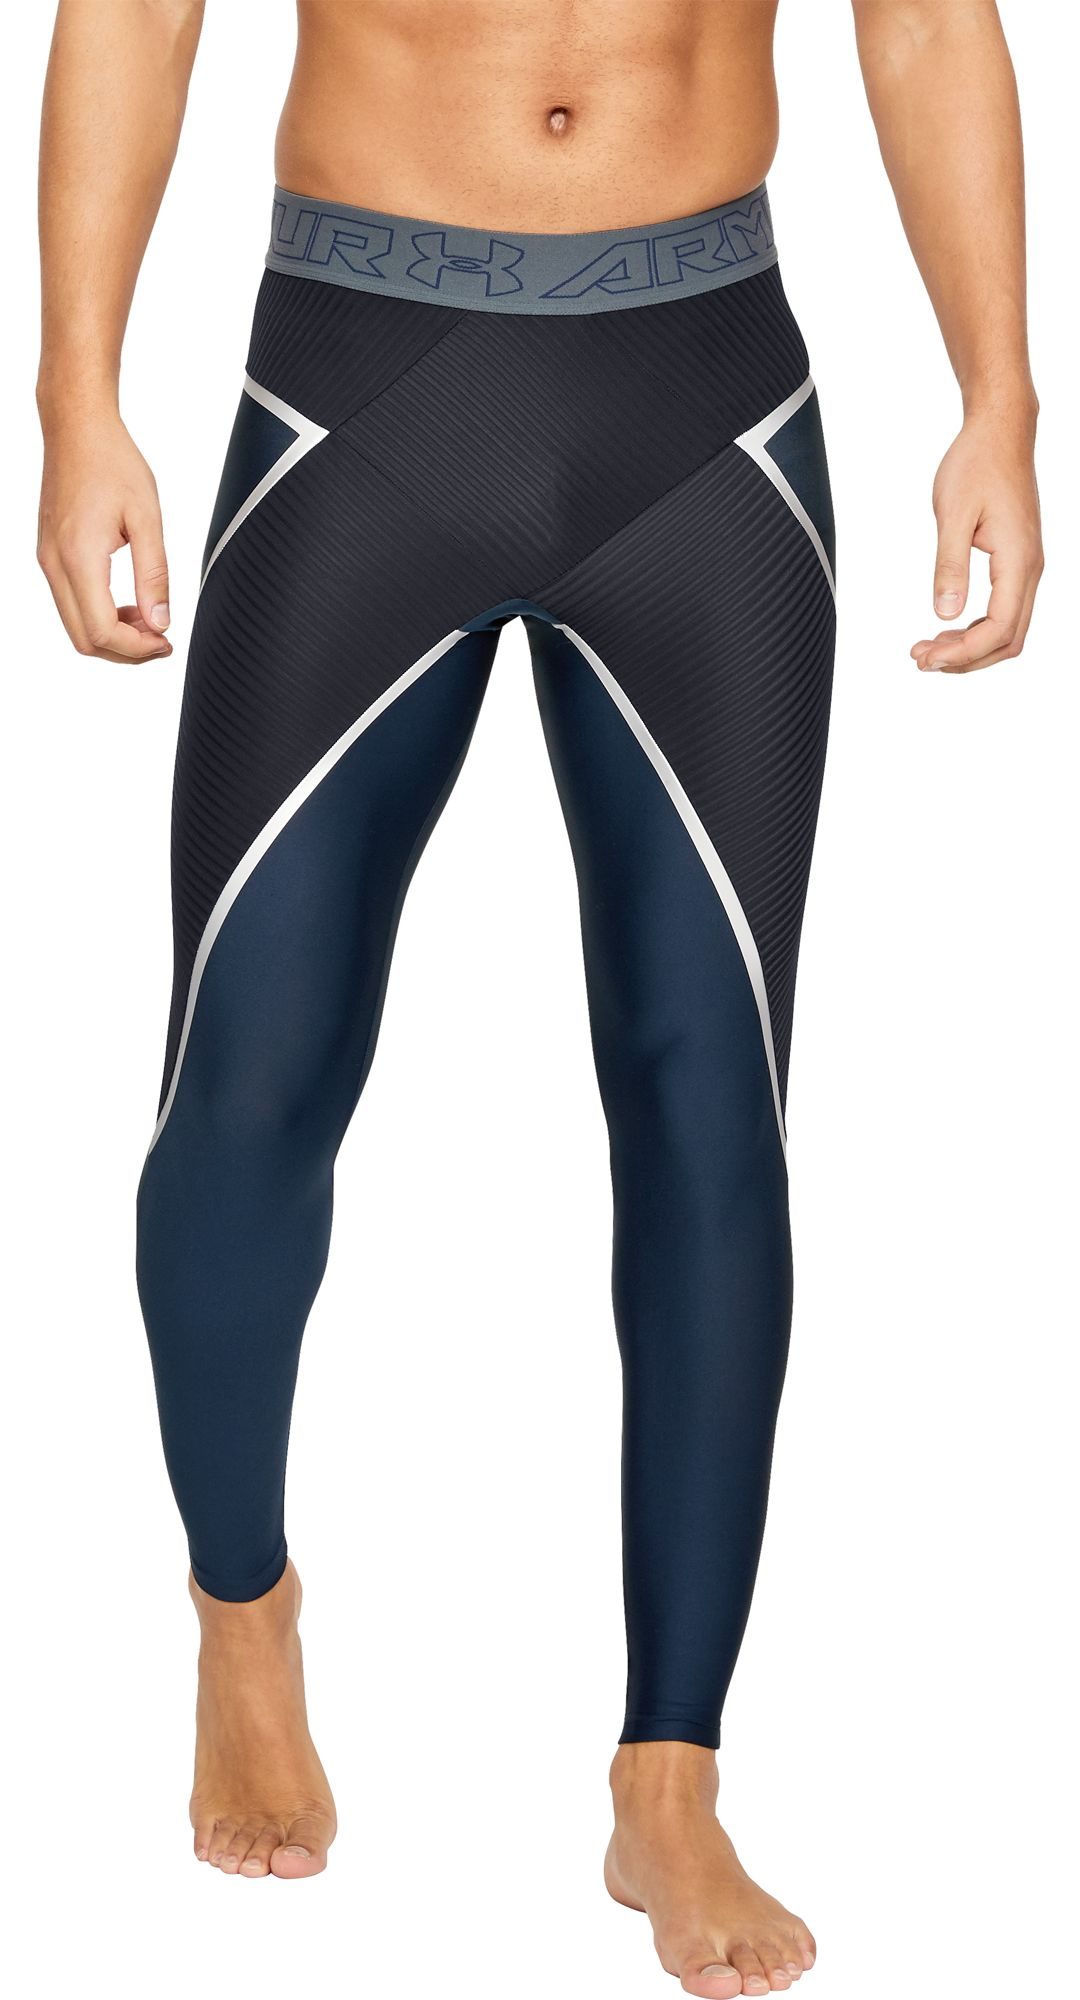 0c7df8fb82651 Under Armour Men's Project Rock Core Tights | DICK'S Sporting Goods